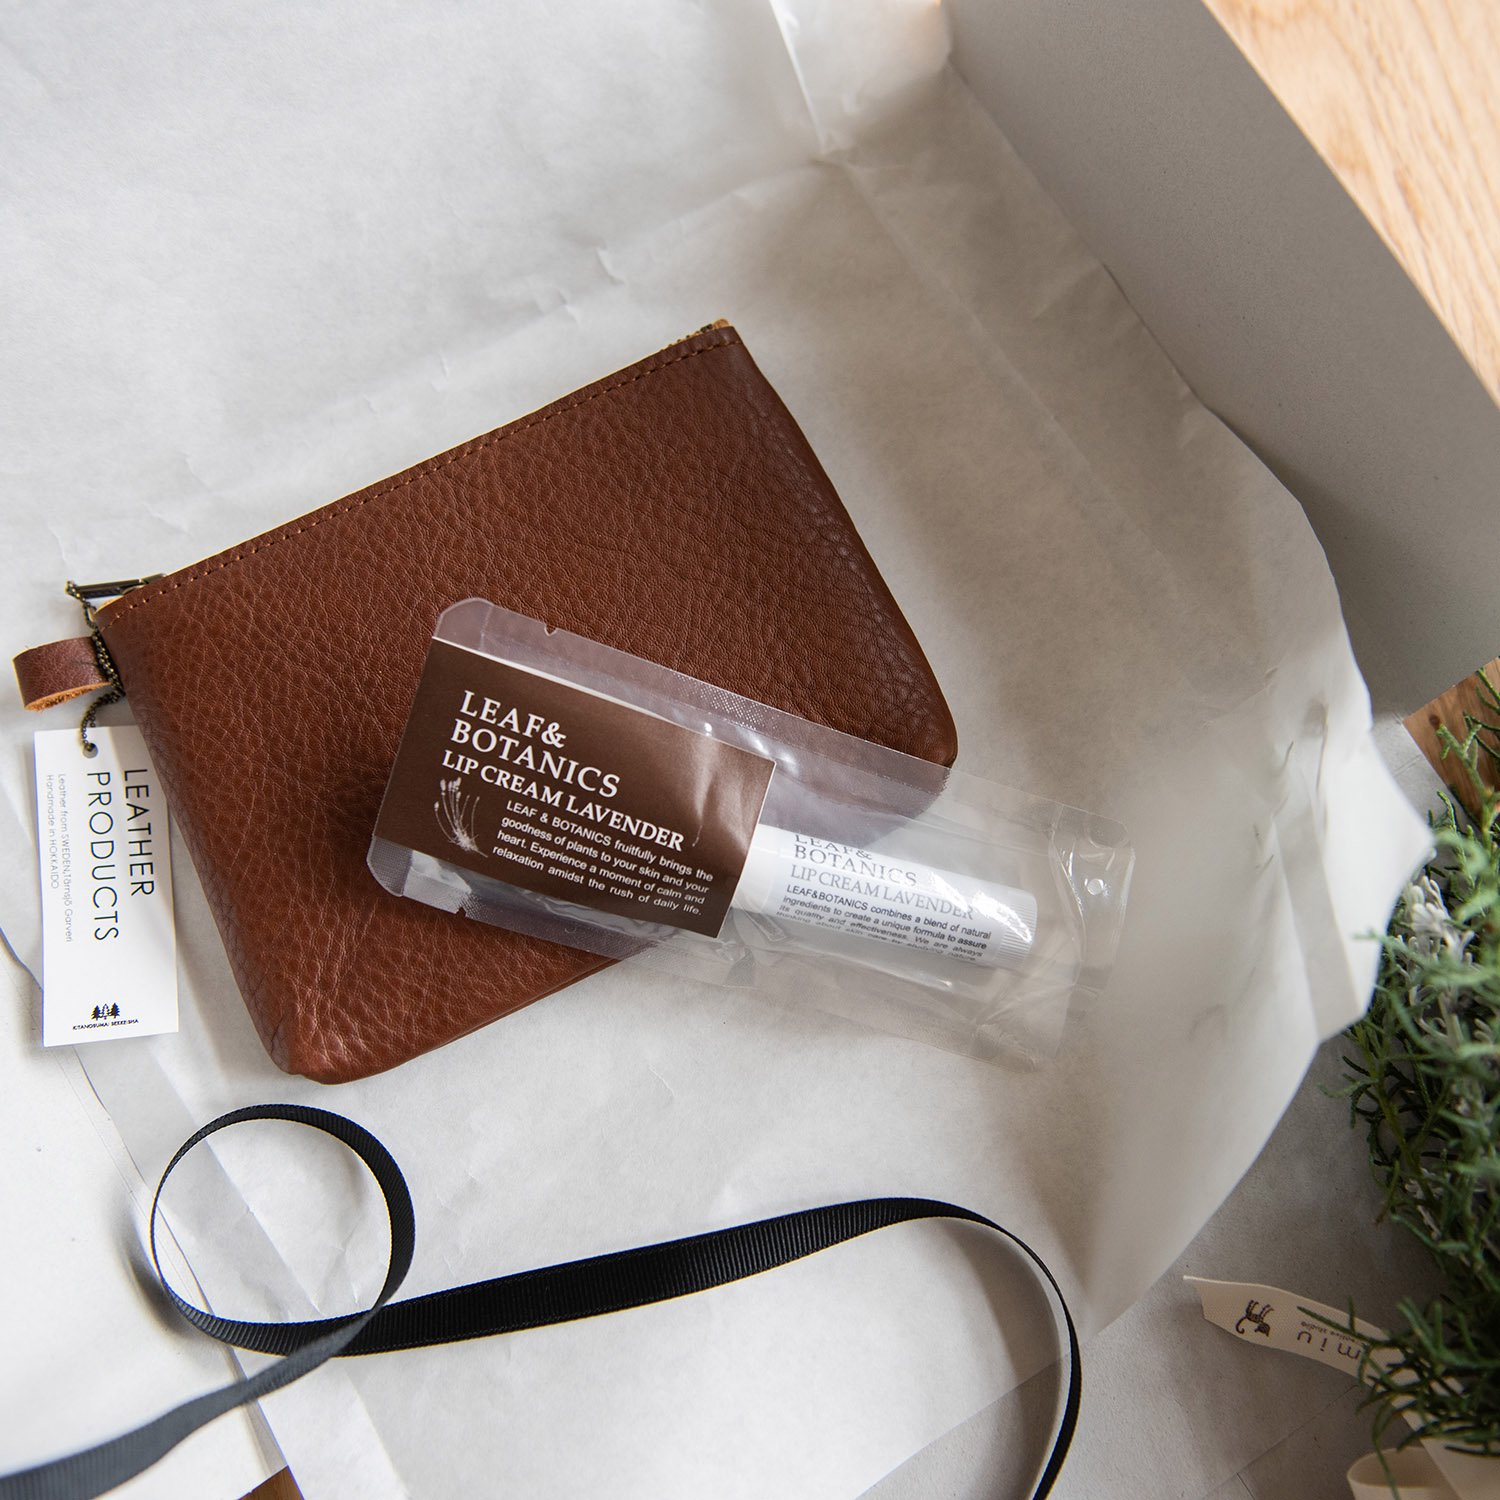 [GIFTSET]Leather pouch S & リップクリーム ギフトセット